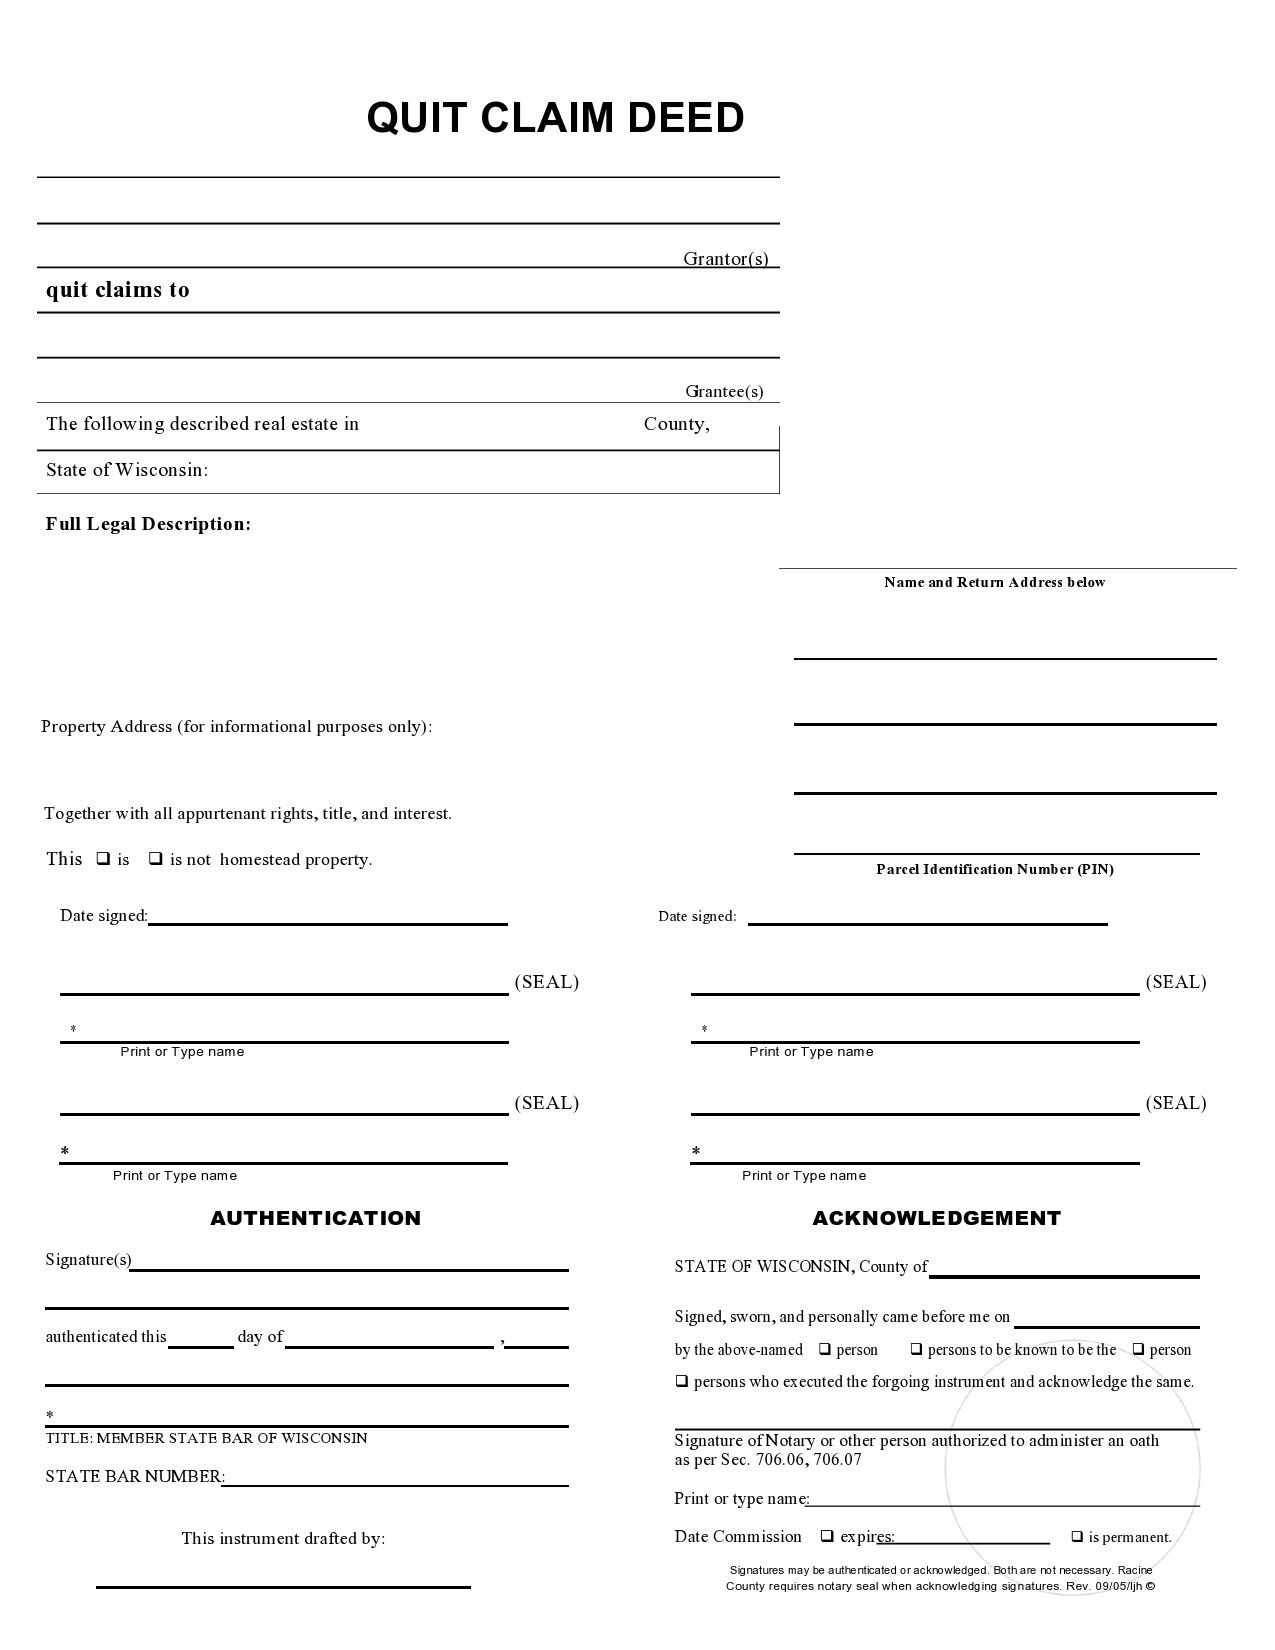 Free quit claim deed form 12